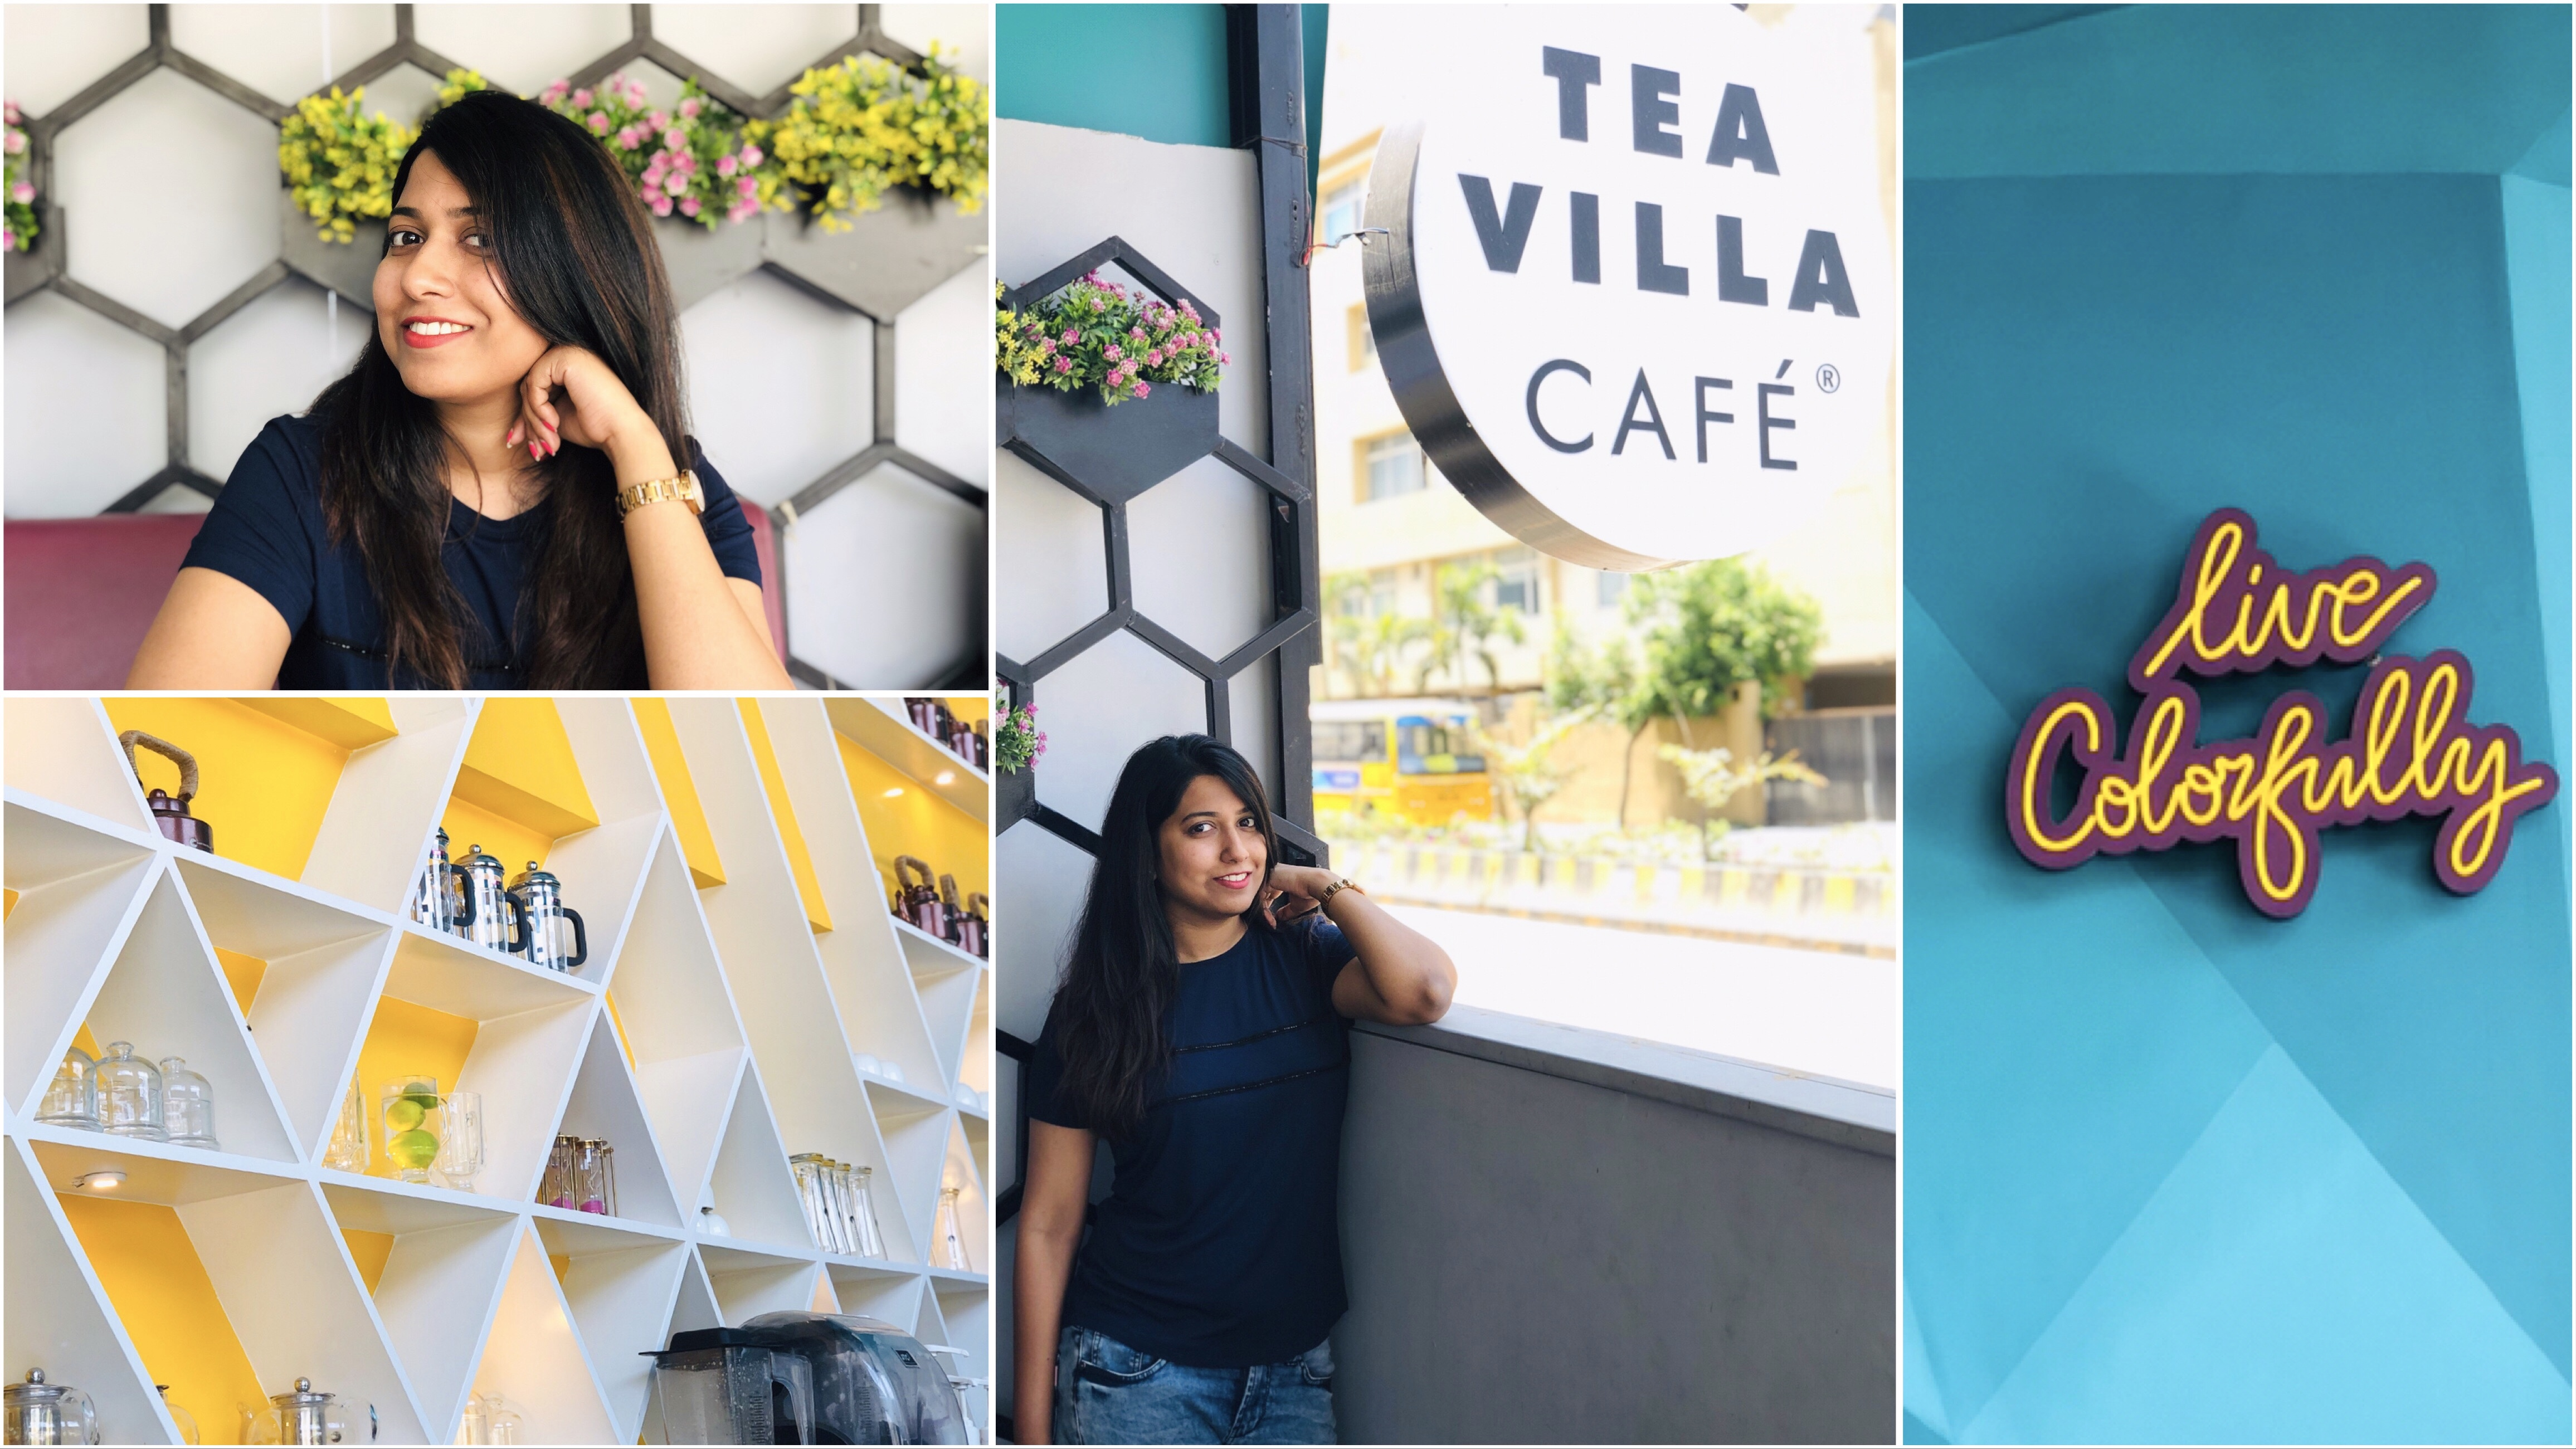 tea villa cafe